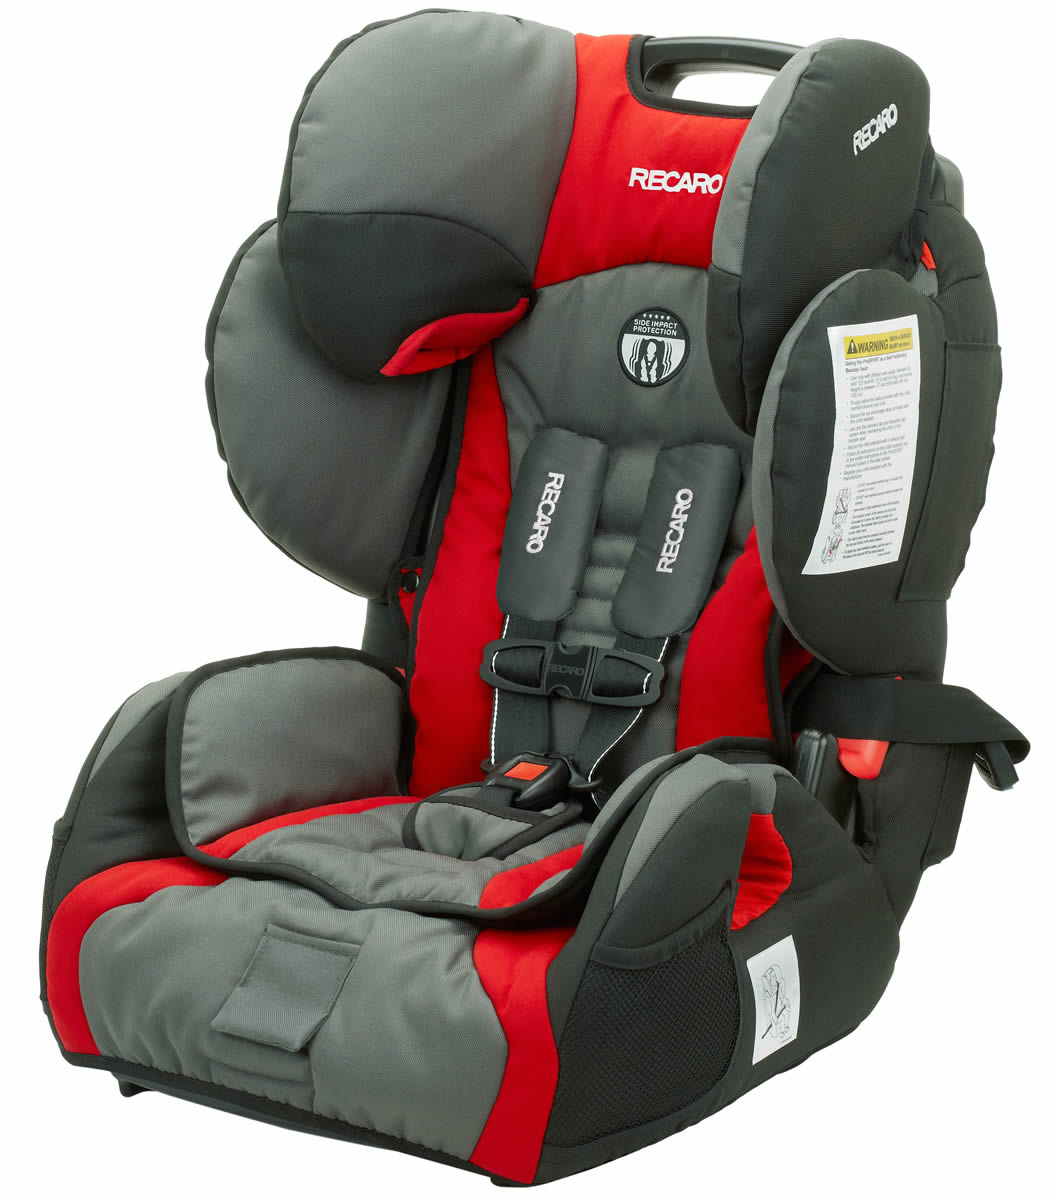 Recaro Performance Sport >> Recaro Performance Sport Combination Harness To Booster Car Seat Blaze